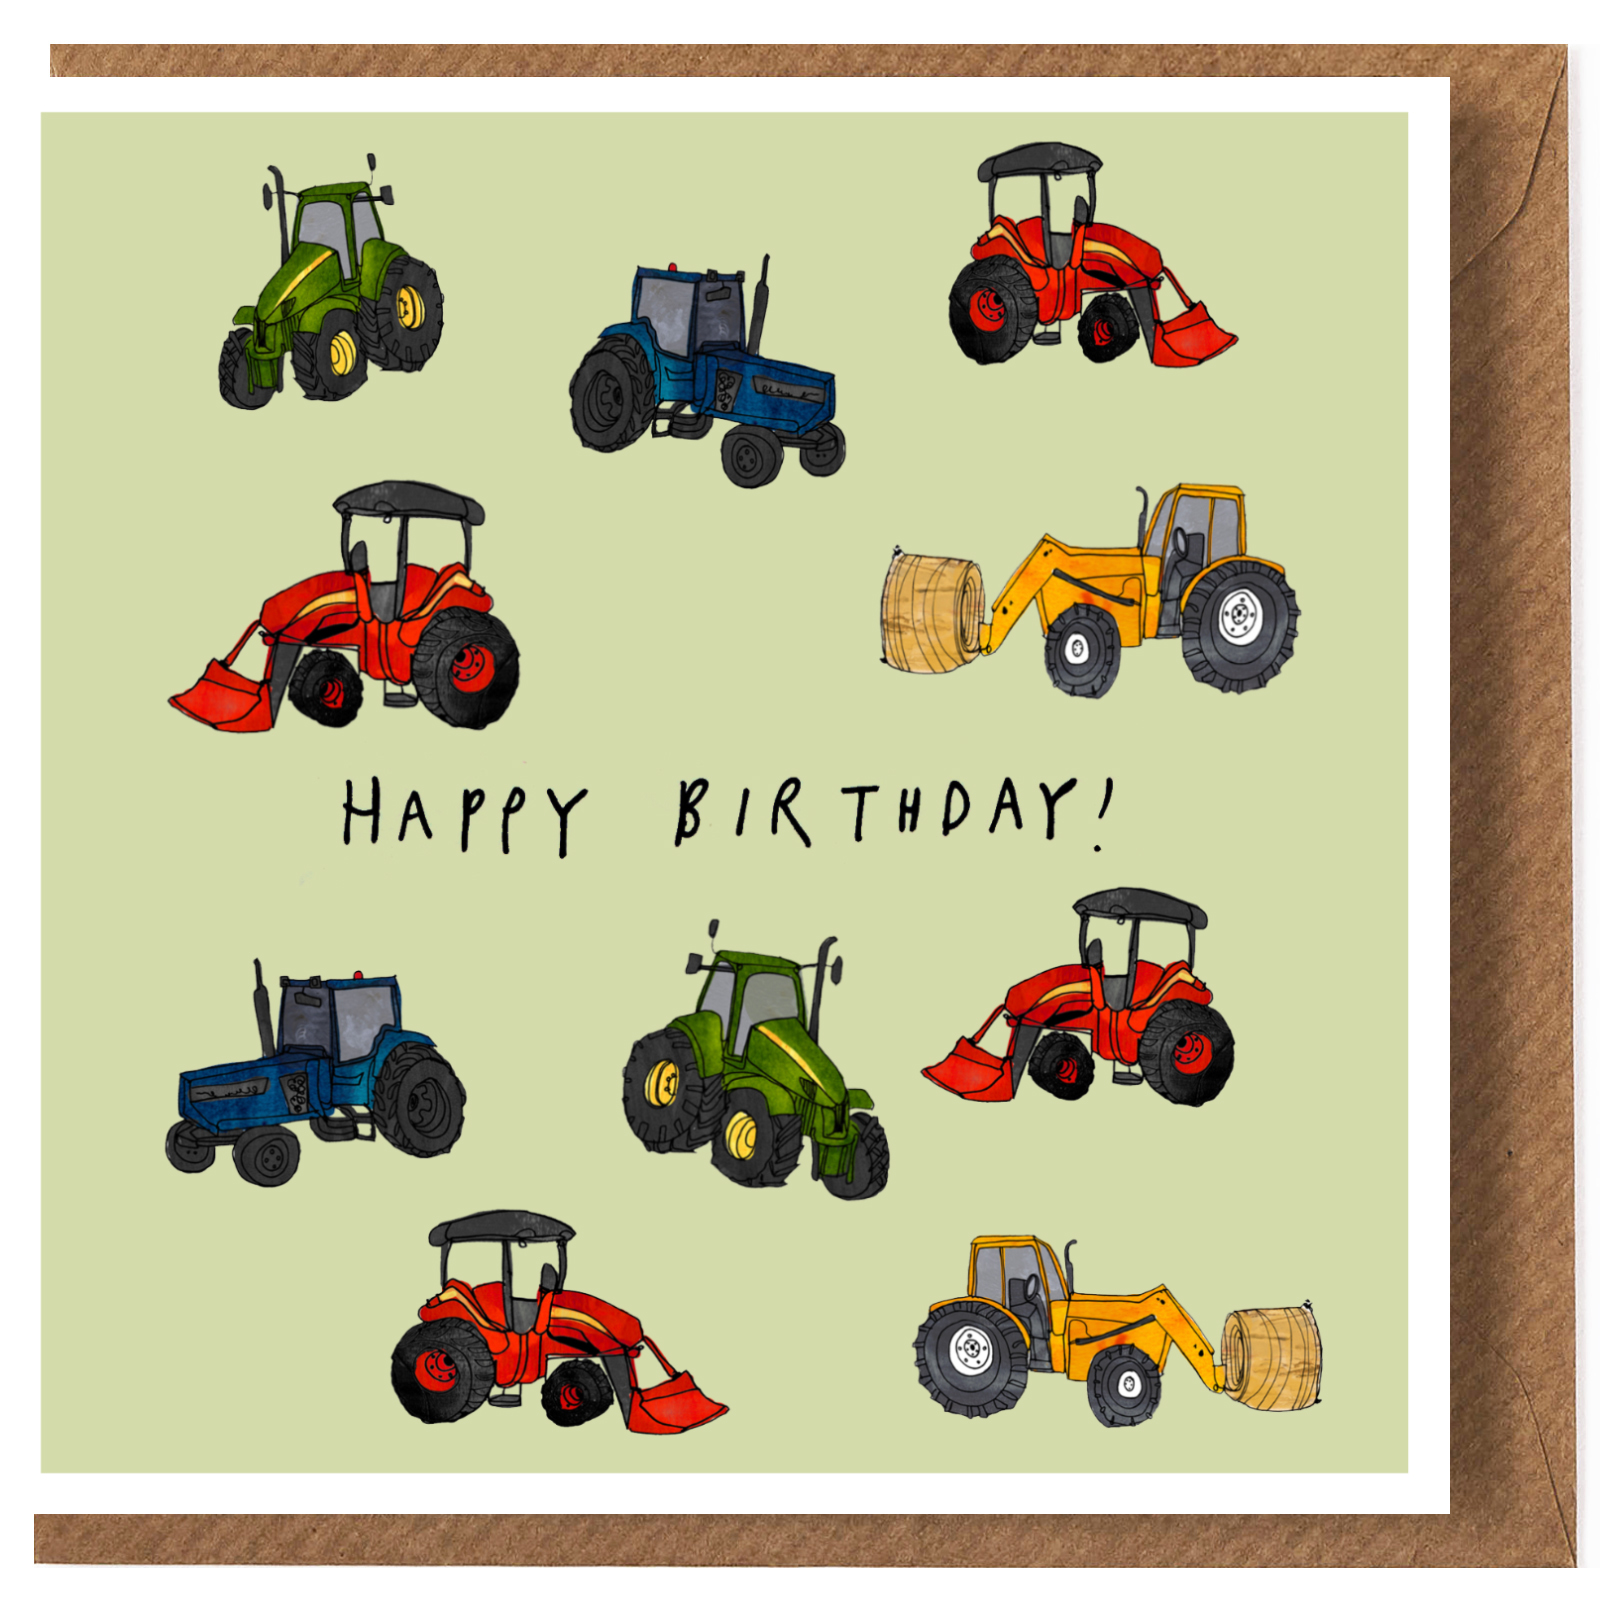 'Tractors' Happy Birthday Greeting Card by Katie Cardew ...